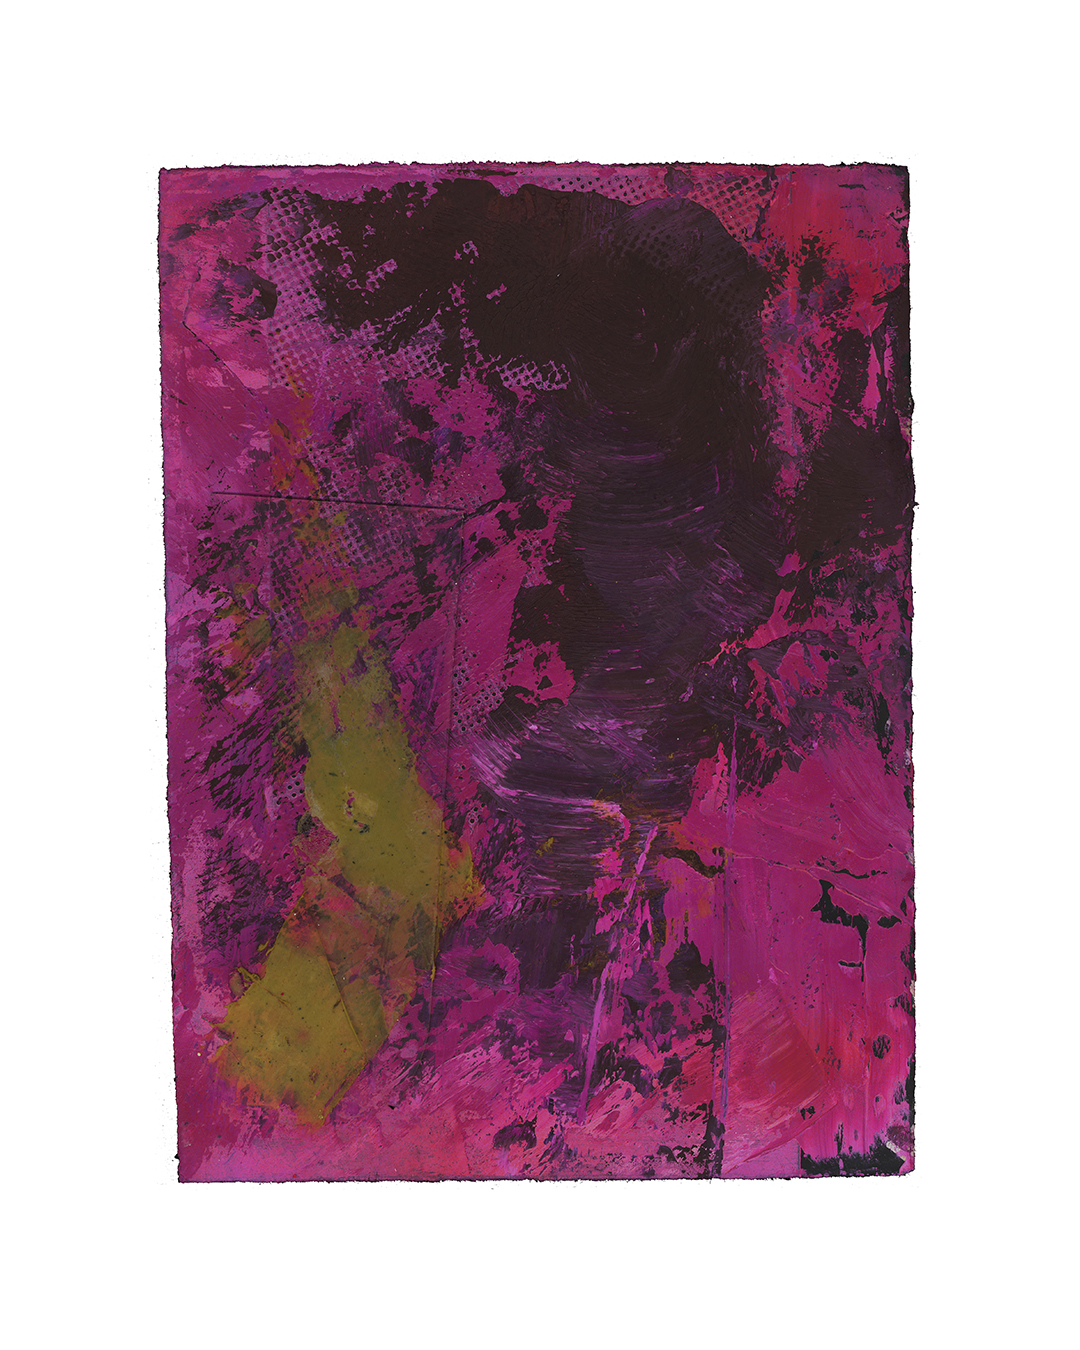 Piet Dieleman, untitled, 2020, painting, epoxy filler, glass, oil, tempera, paint, laser woodprint on paper, 395 x 285 mm, €930